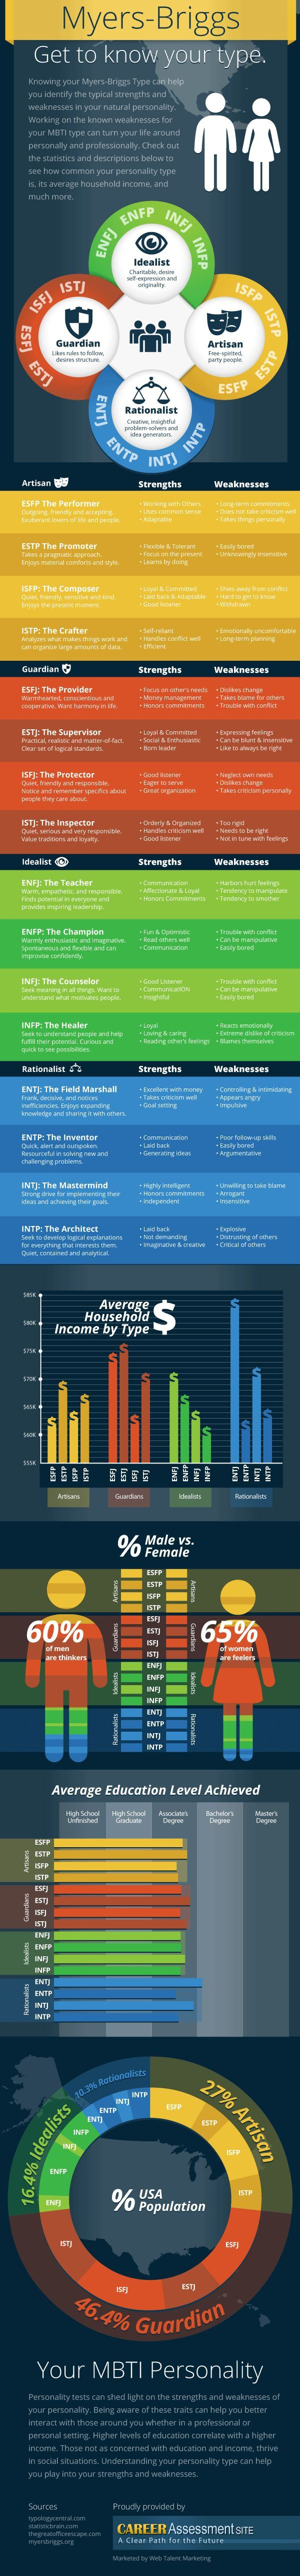 Myers-Briggs: What's Your Type? {Infographic} - Best Infographics. Find local schools and teachers on EducatorHub.com